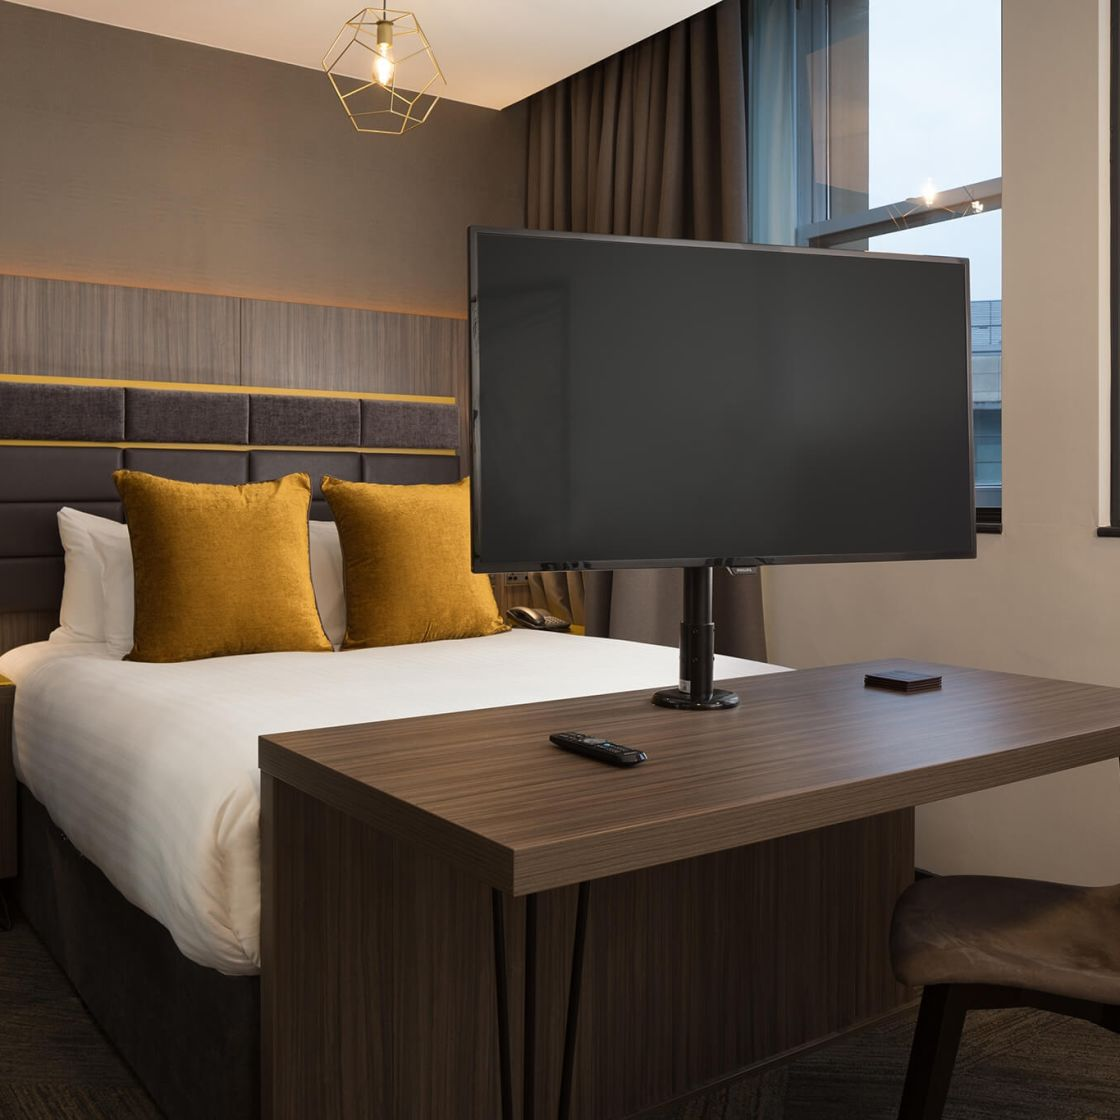 Smart Studio Student Apartment in Manchester with HD TV. IconInc @ Roomzzz